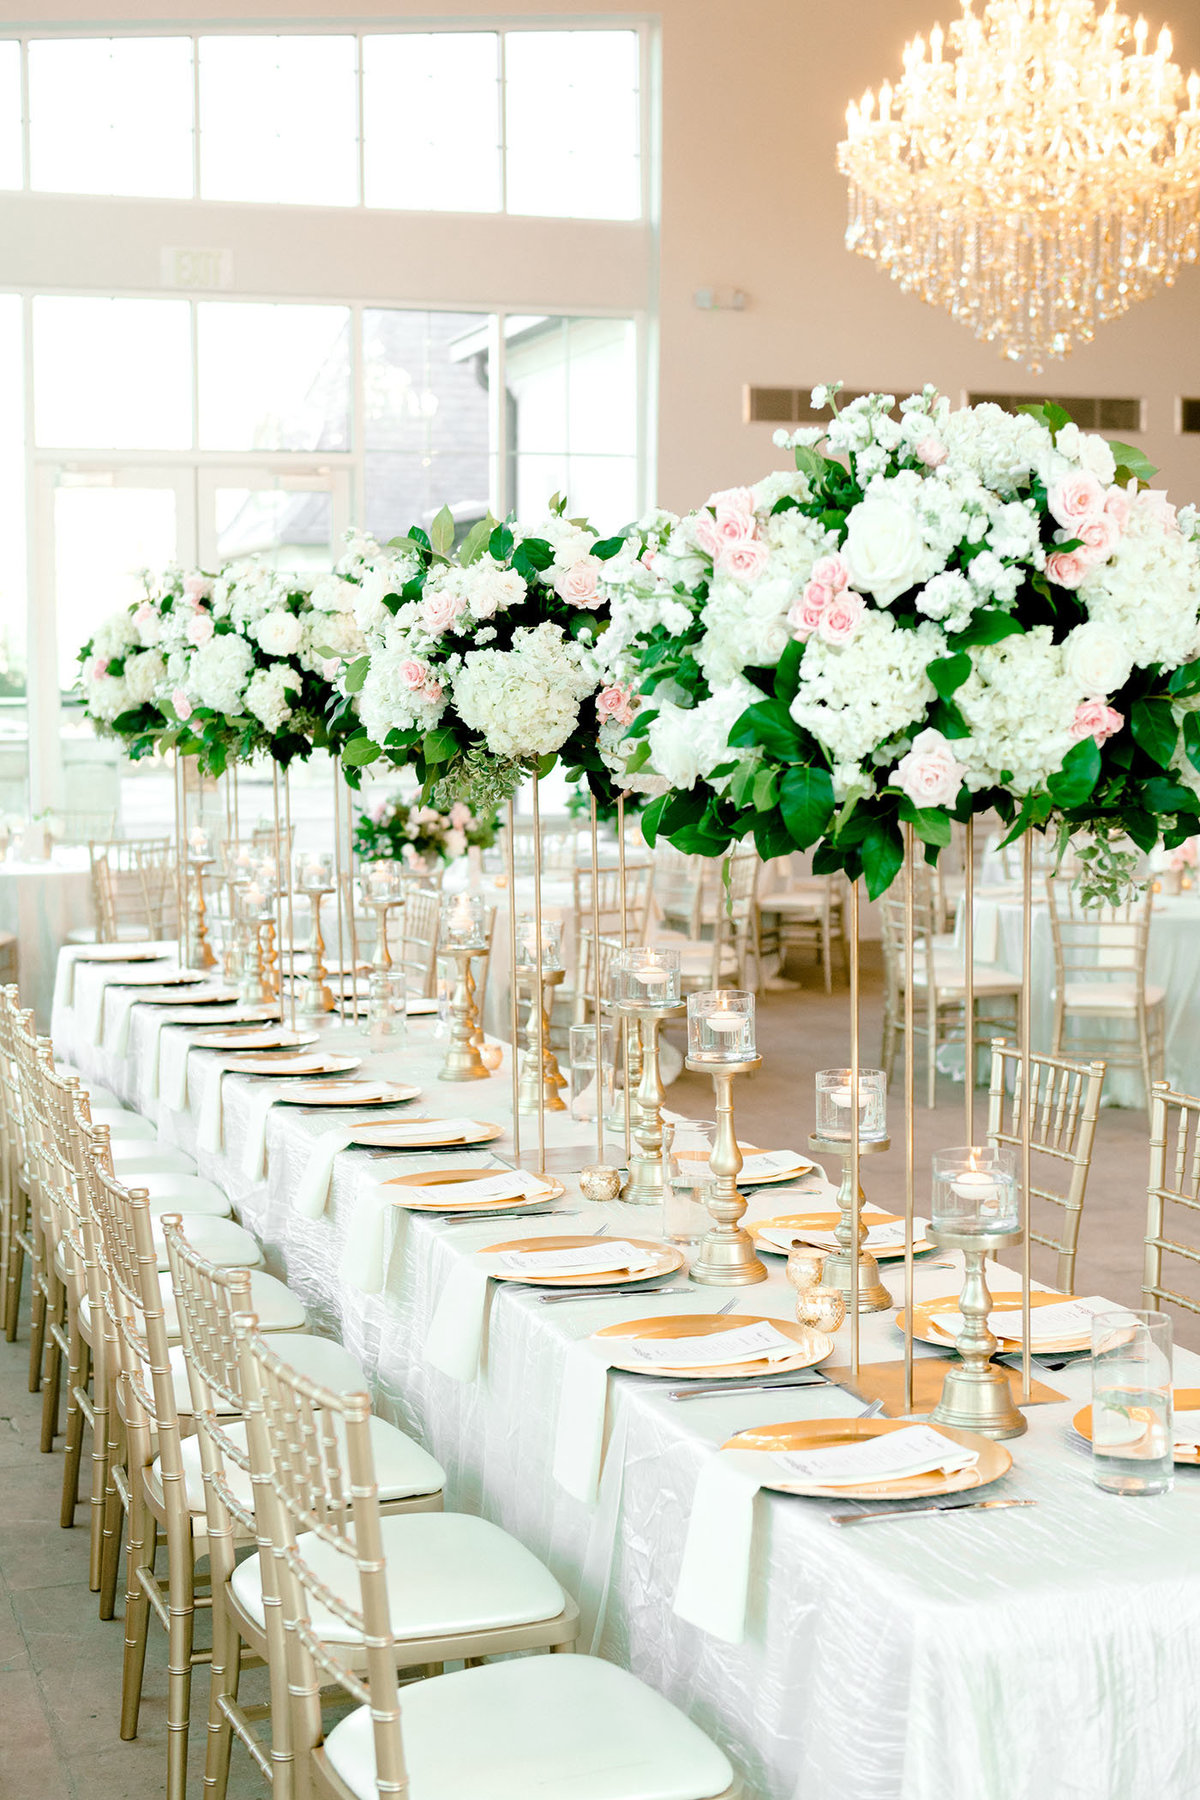 Allora & Ivy Event Co - Dallas Wedding Planner - Emily Andrew - The Olana